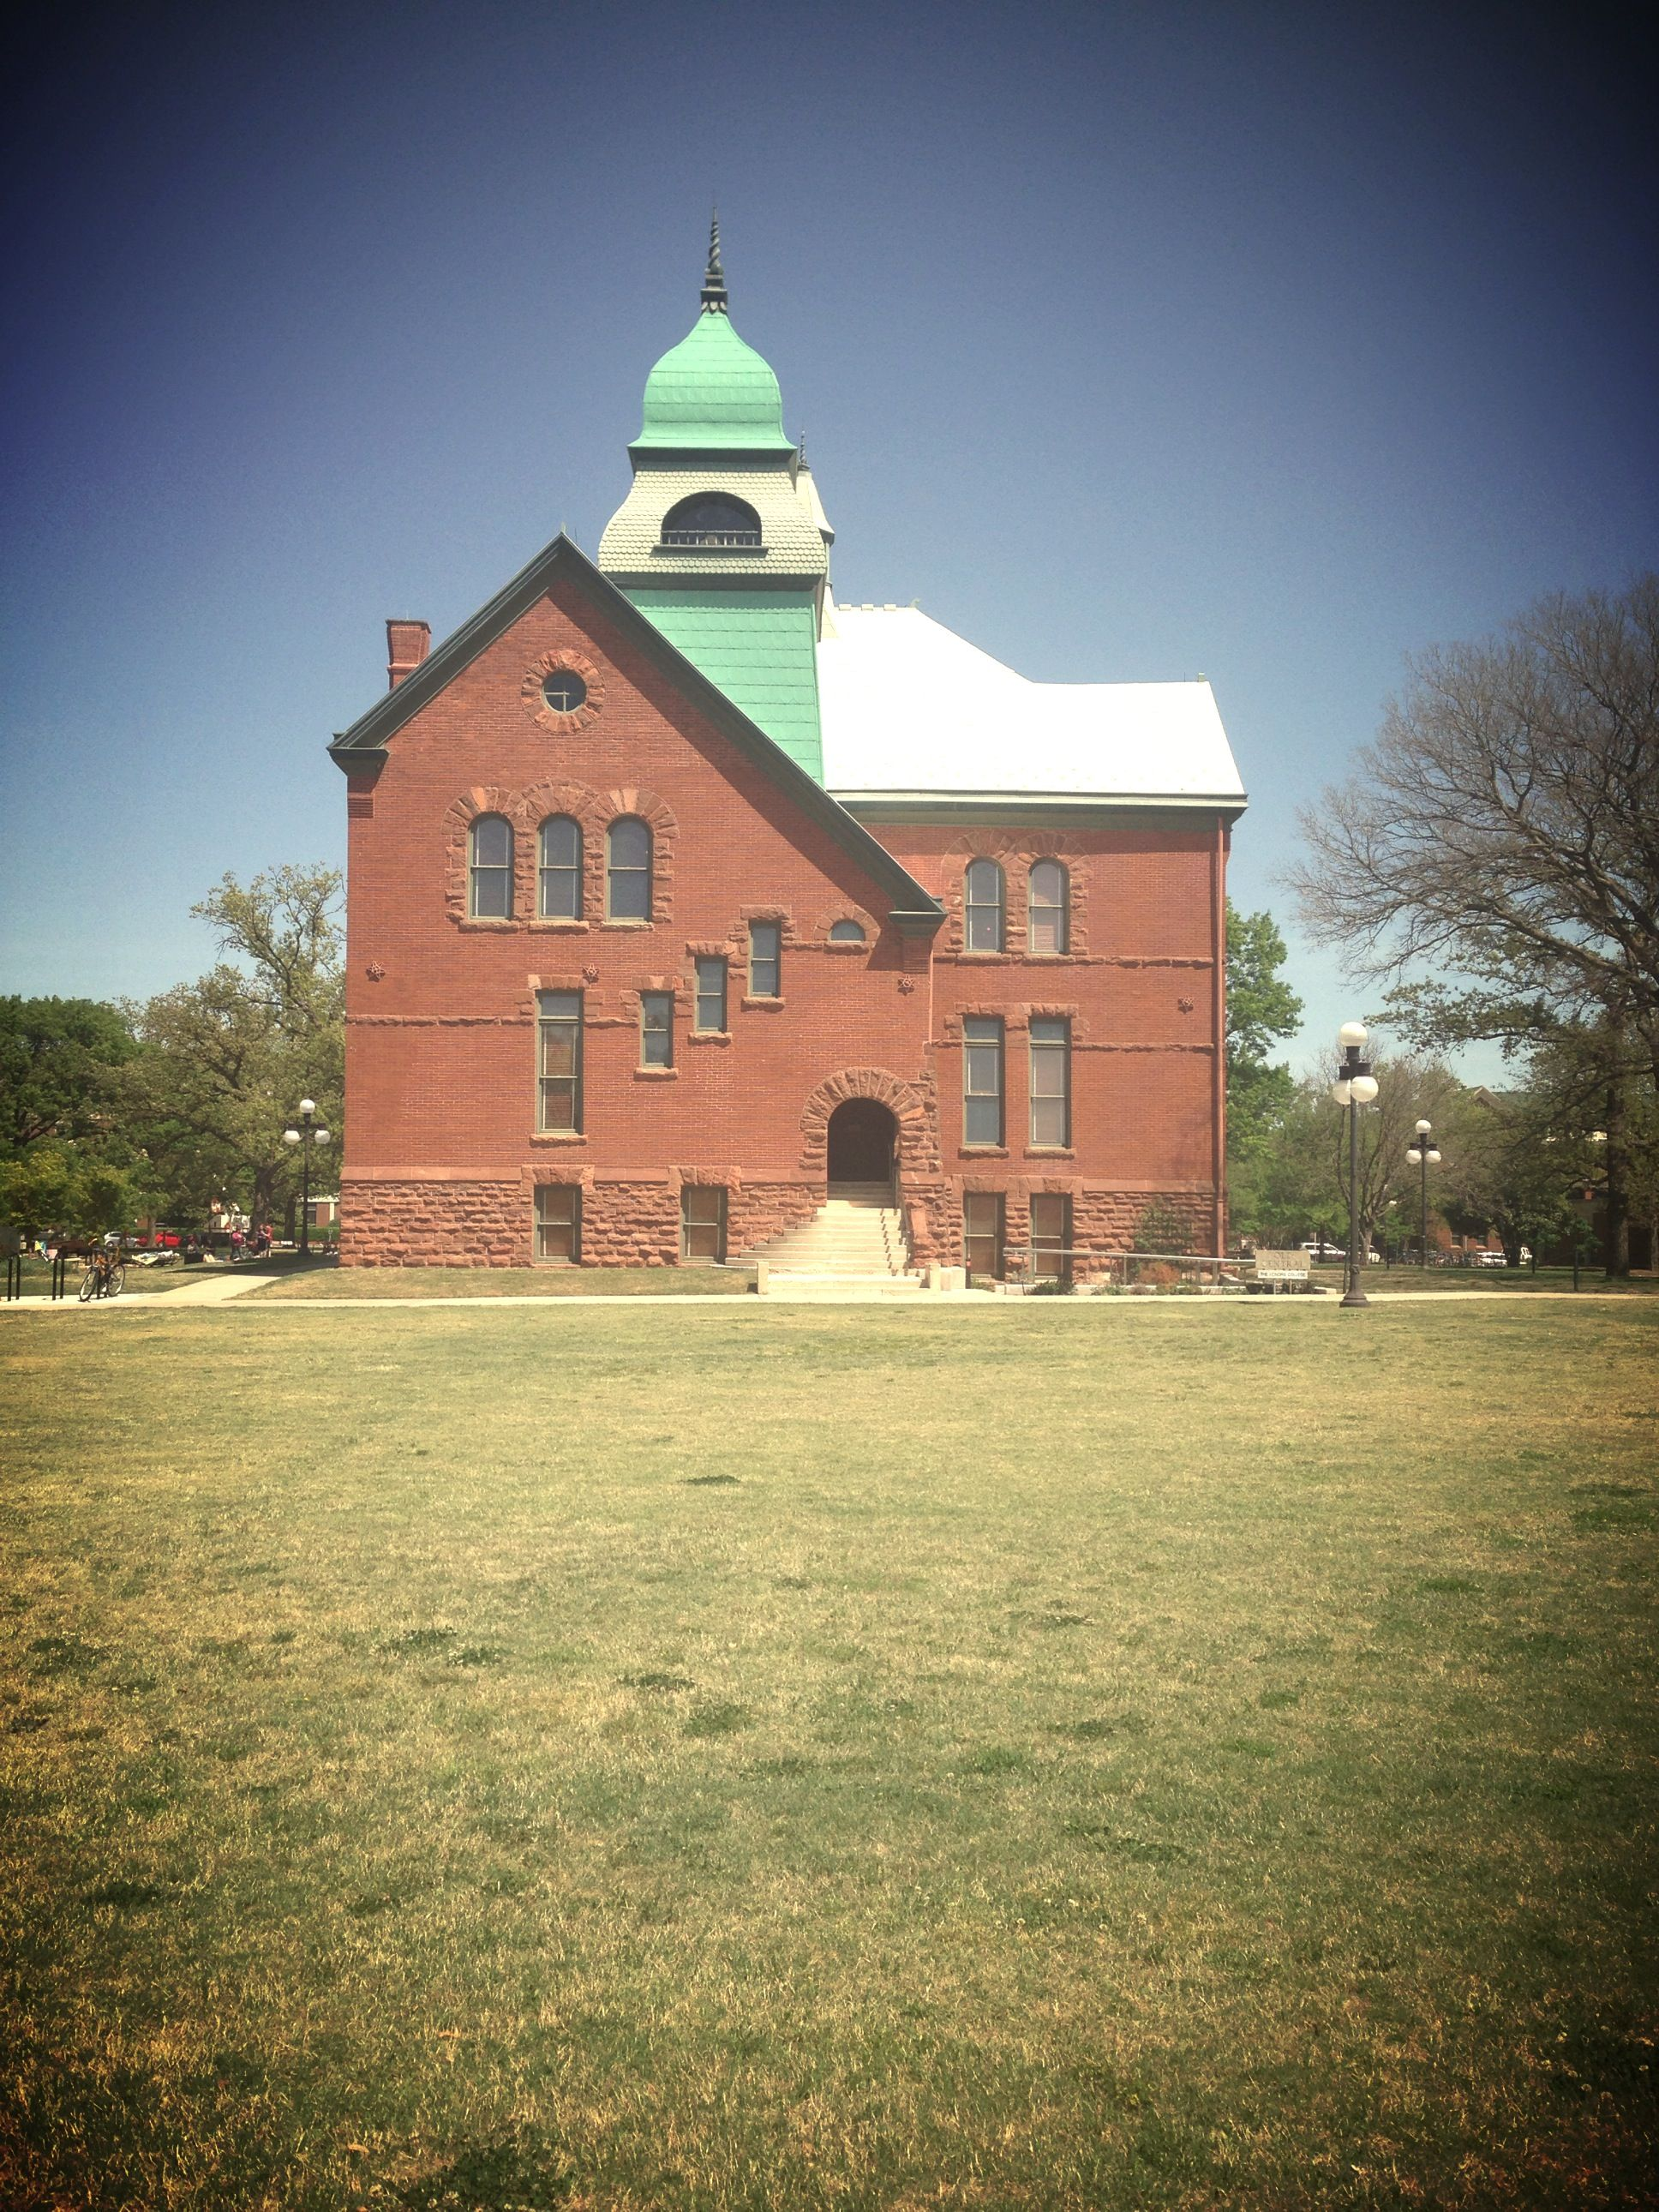 15 Best Places to Live in Oklahoma - The Crazy Tourist